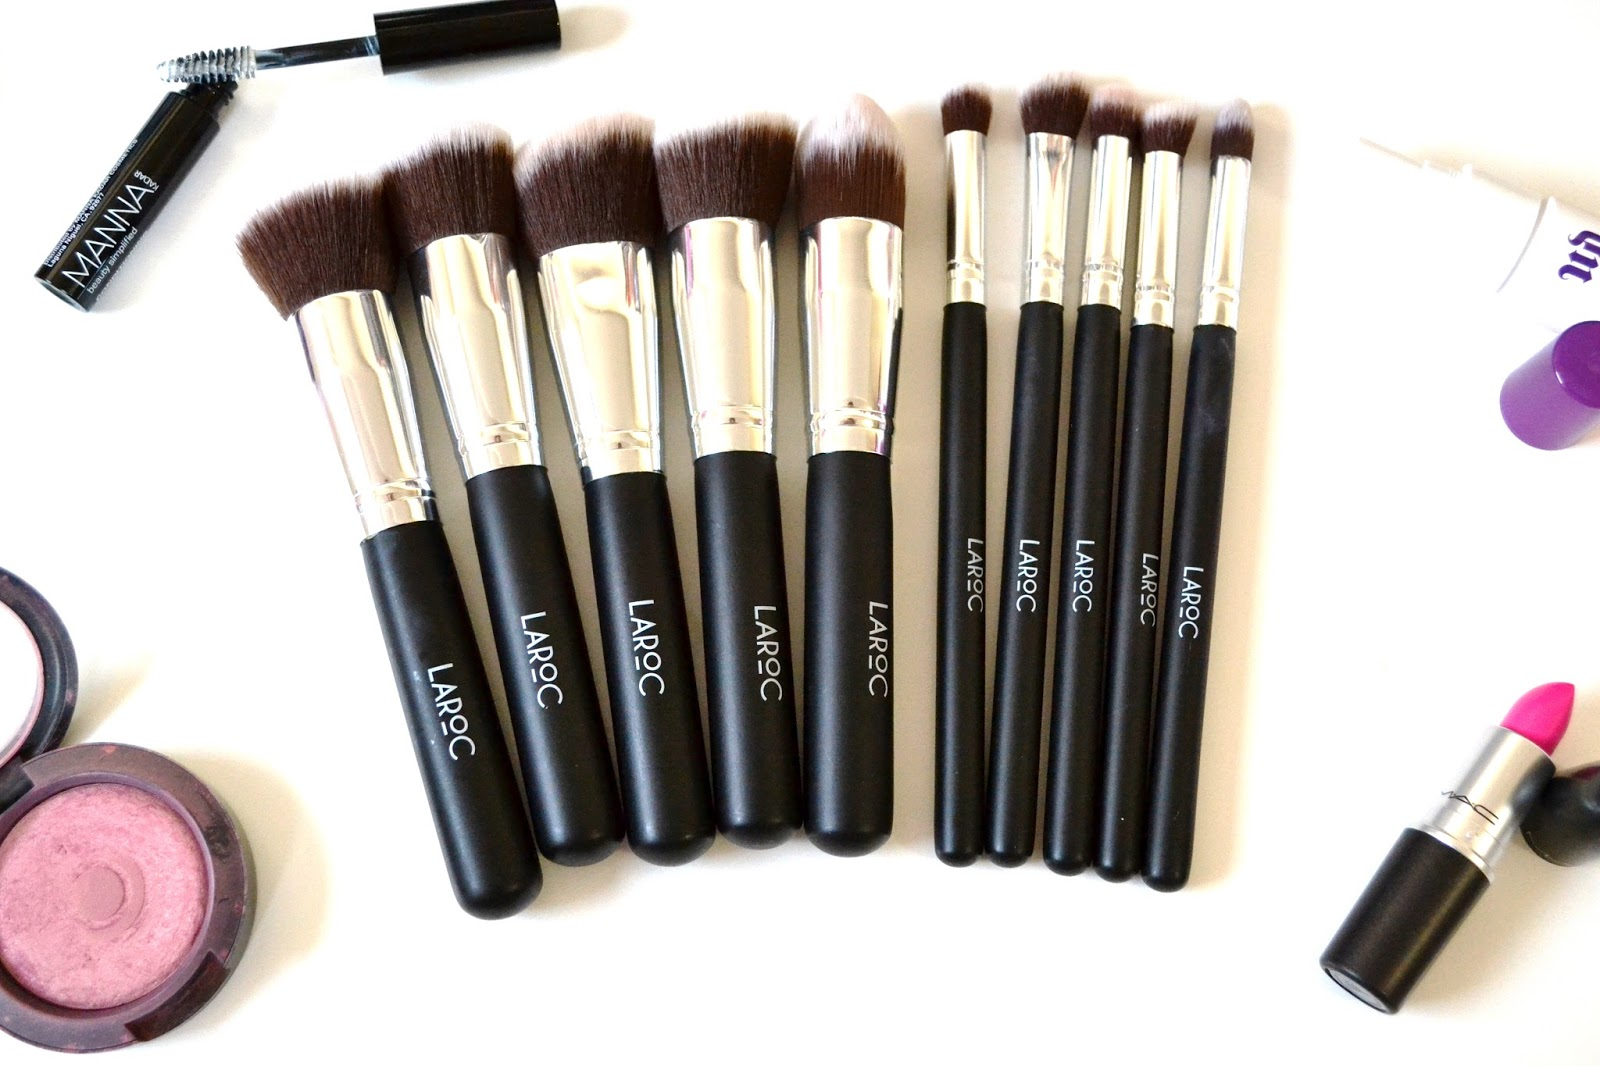 LaRoc 10 Piece Kabuki Makeup Brush Set